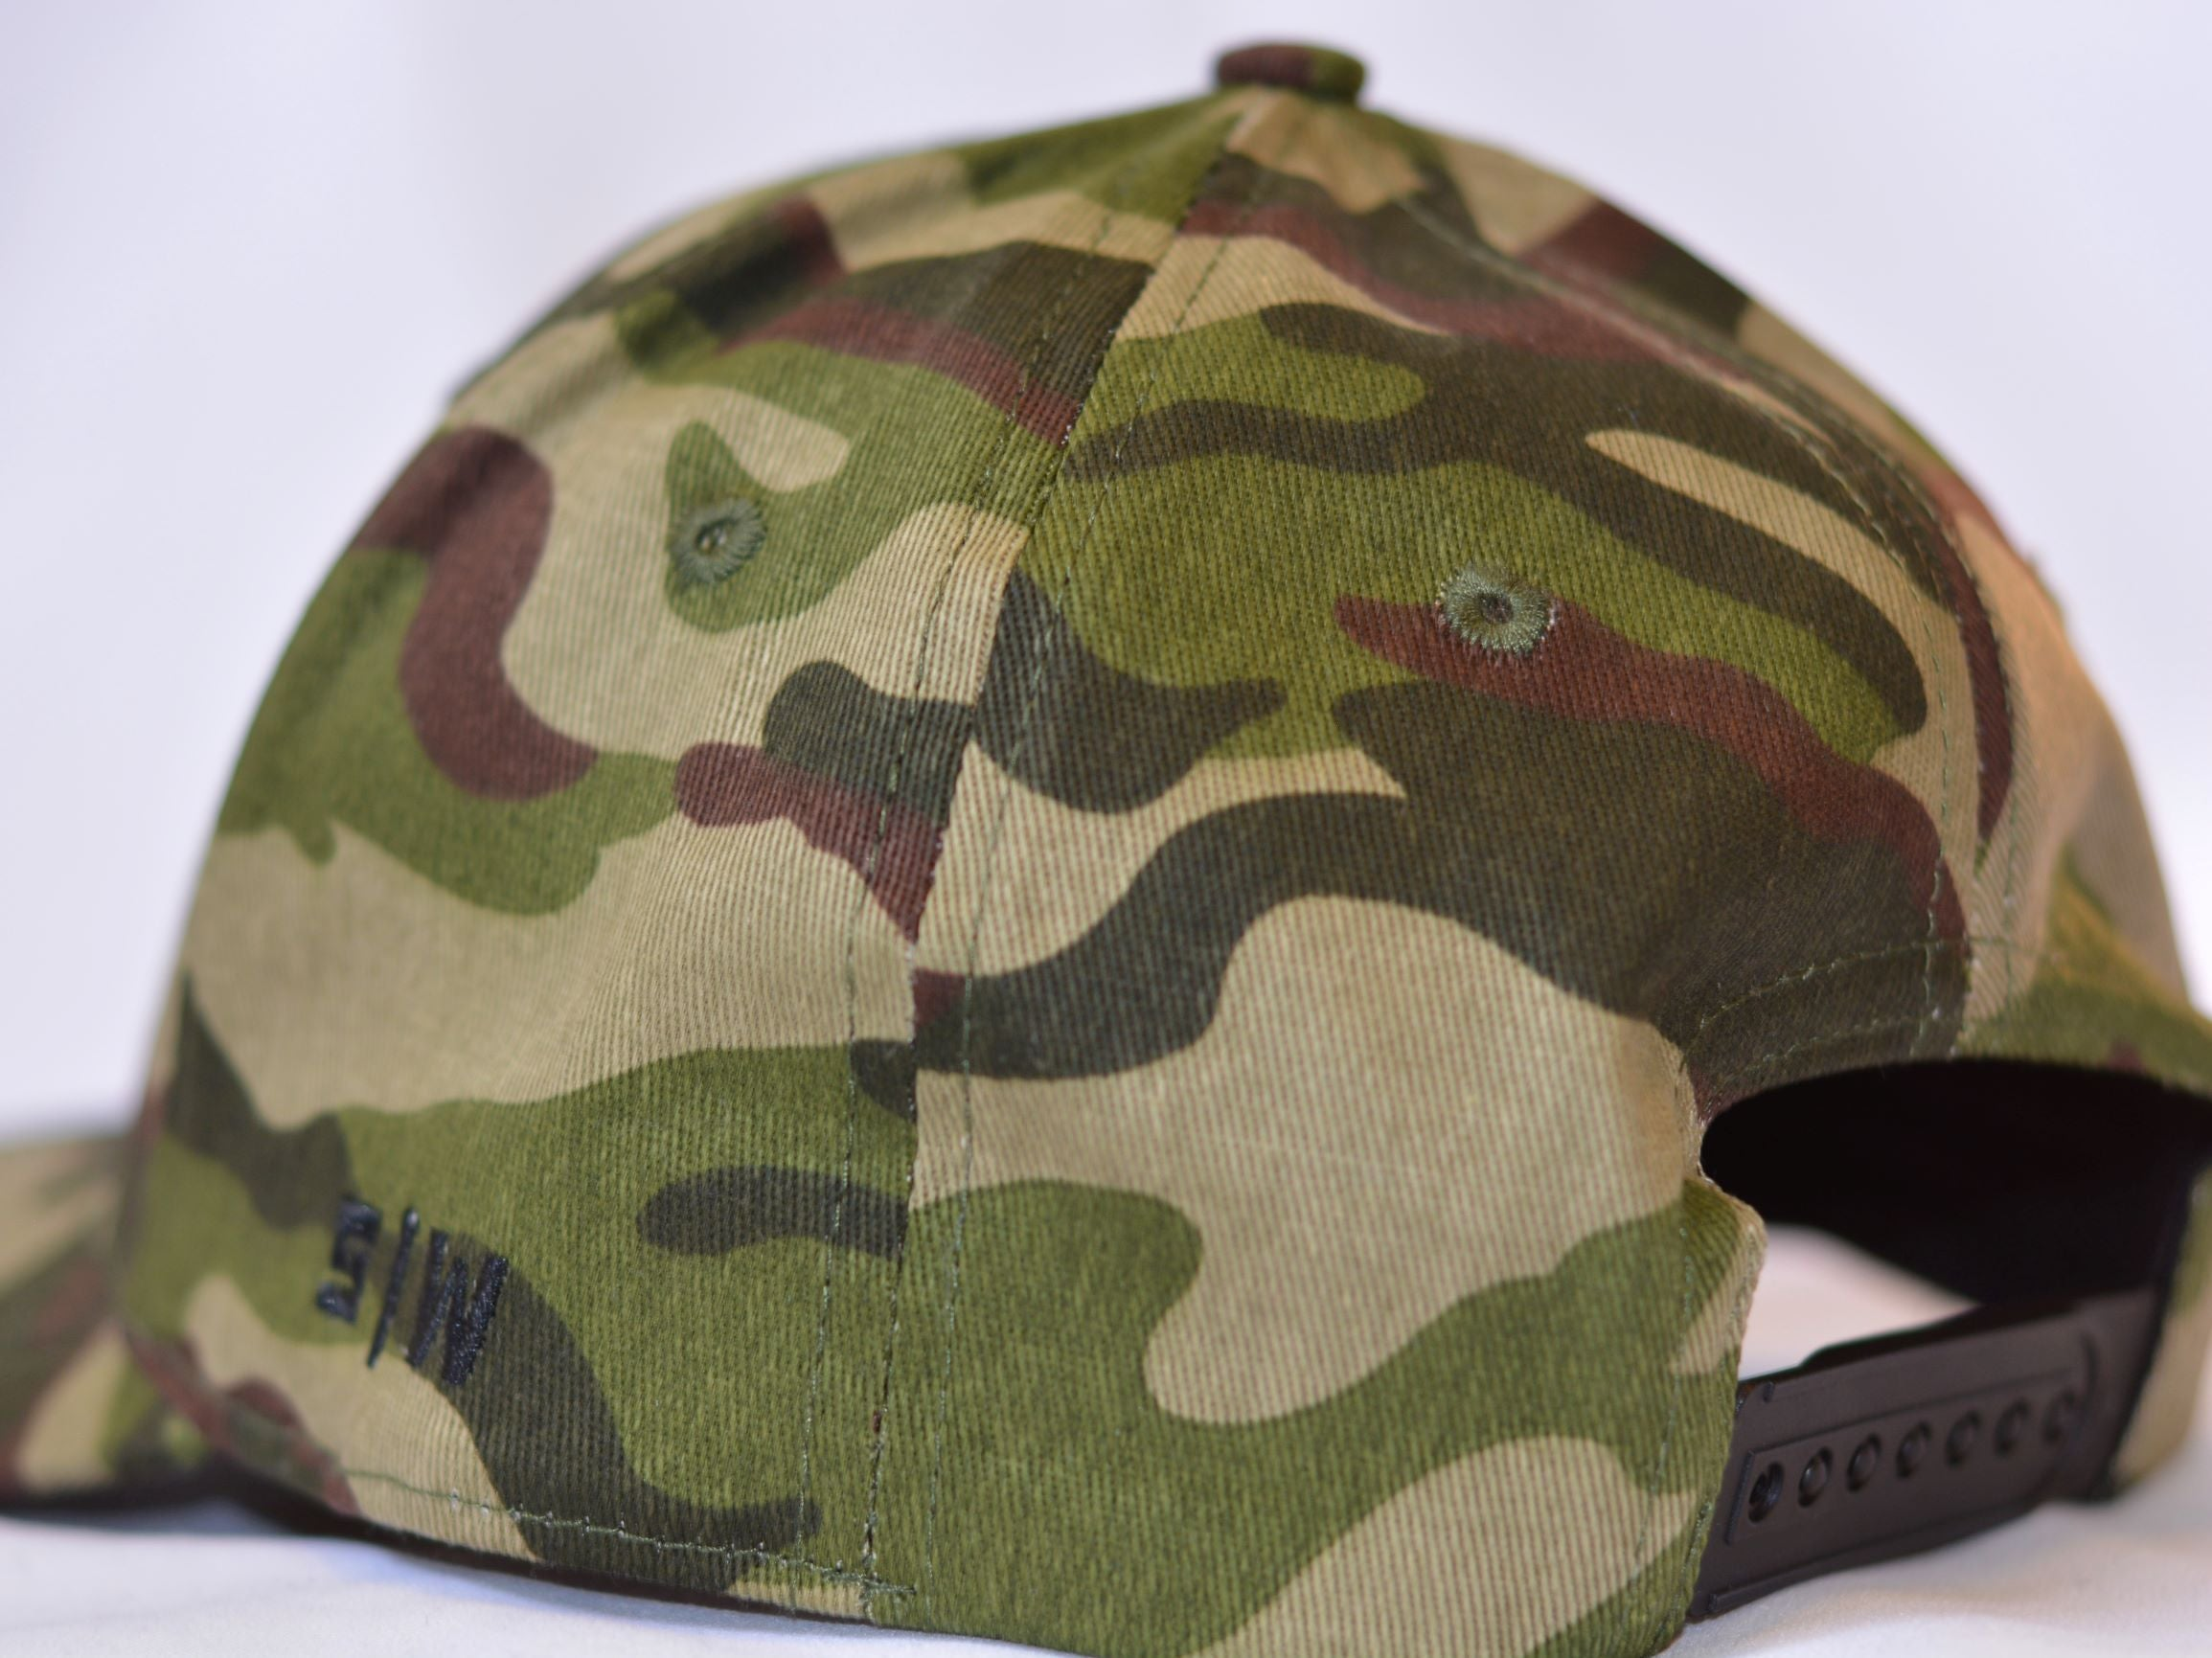 Original-A-Frame-Cap-Camo-Back-Shredded-Warfare